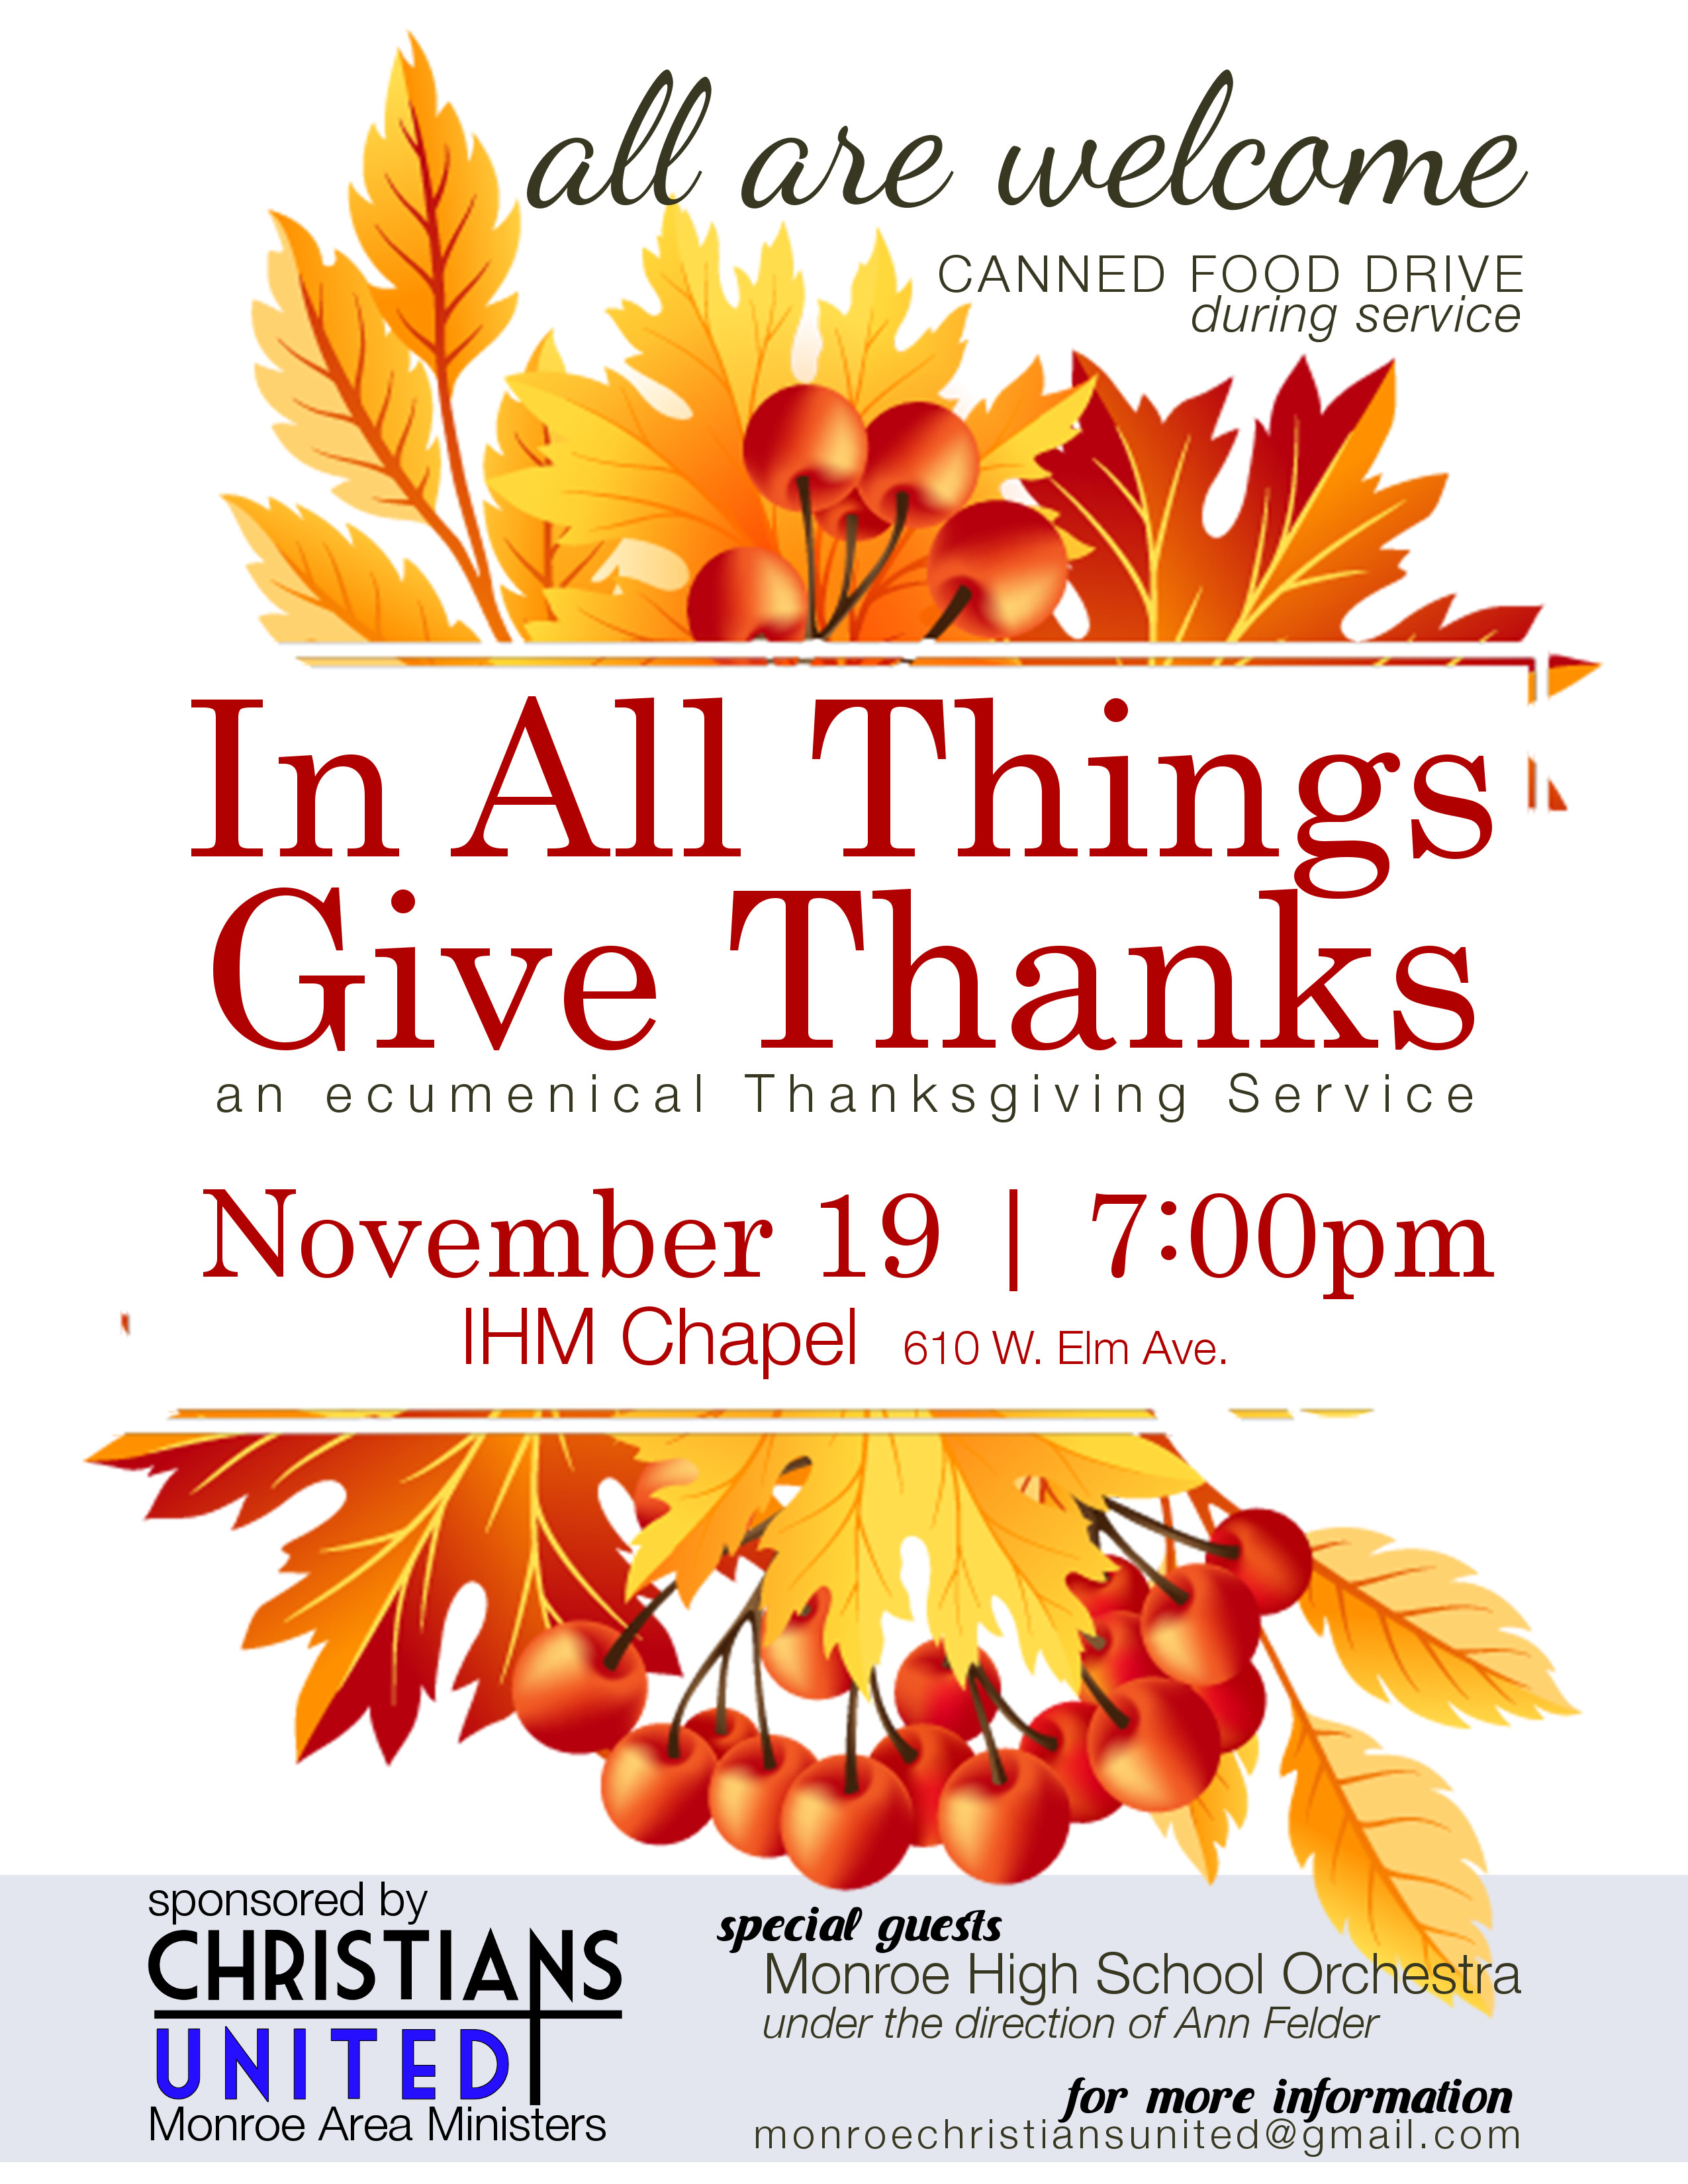 We Are Happy To Announce The Details For Our Thanksgiving Prayer Service Titled In All Things Give Thanks We Will Gather At The Ihm Chapel 610 W Elm